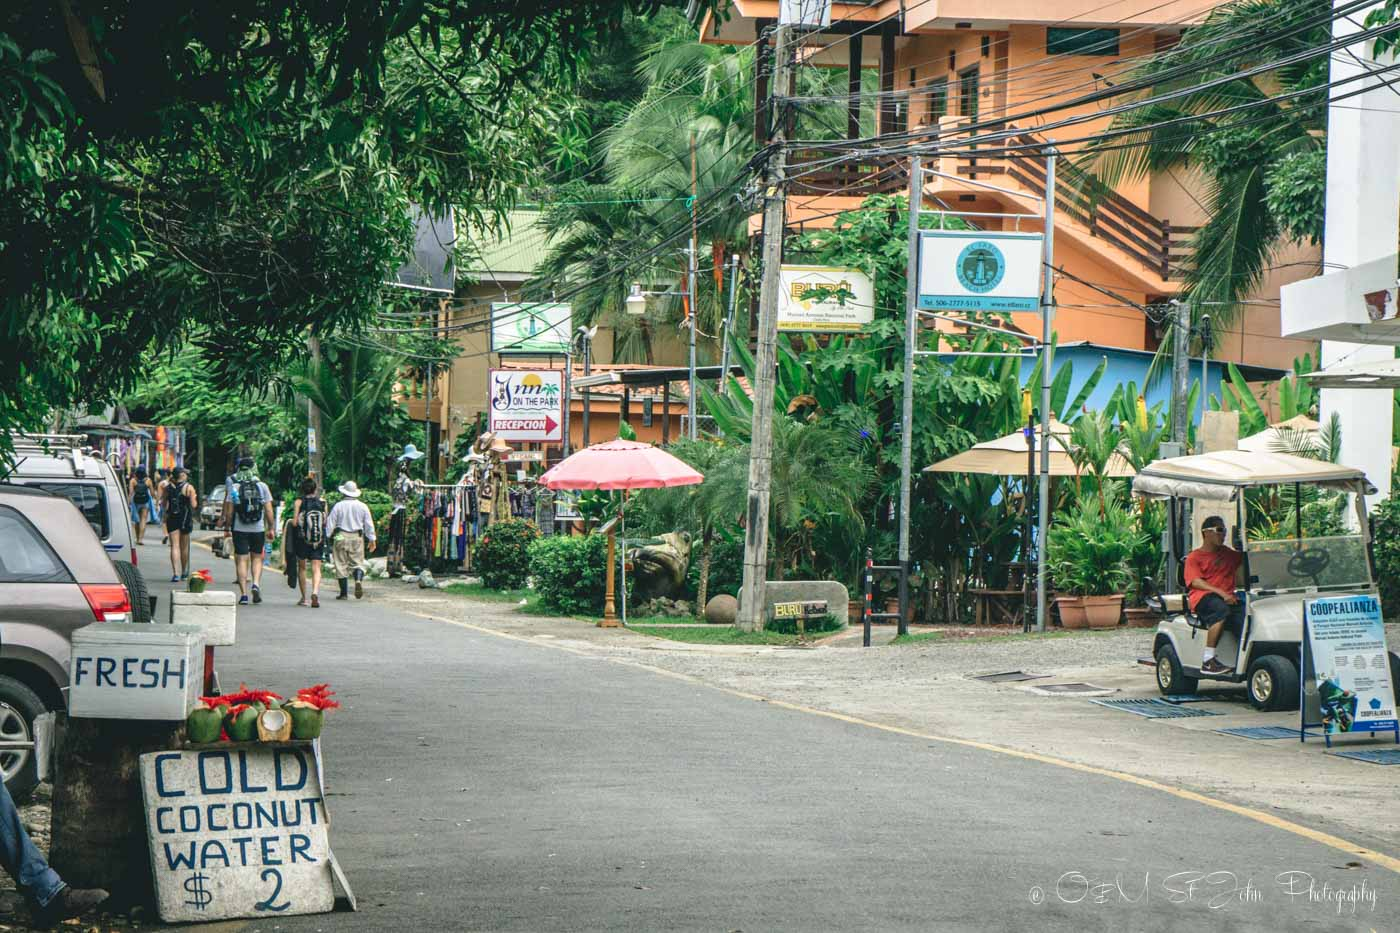 Costa Rica Travel Budget: Use local transportation to get from A to B